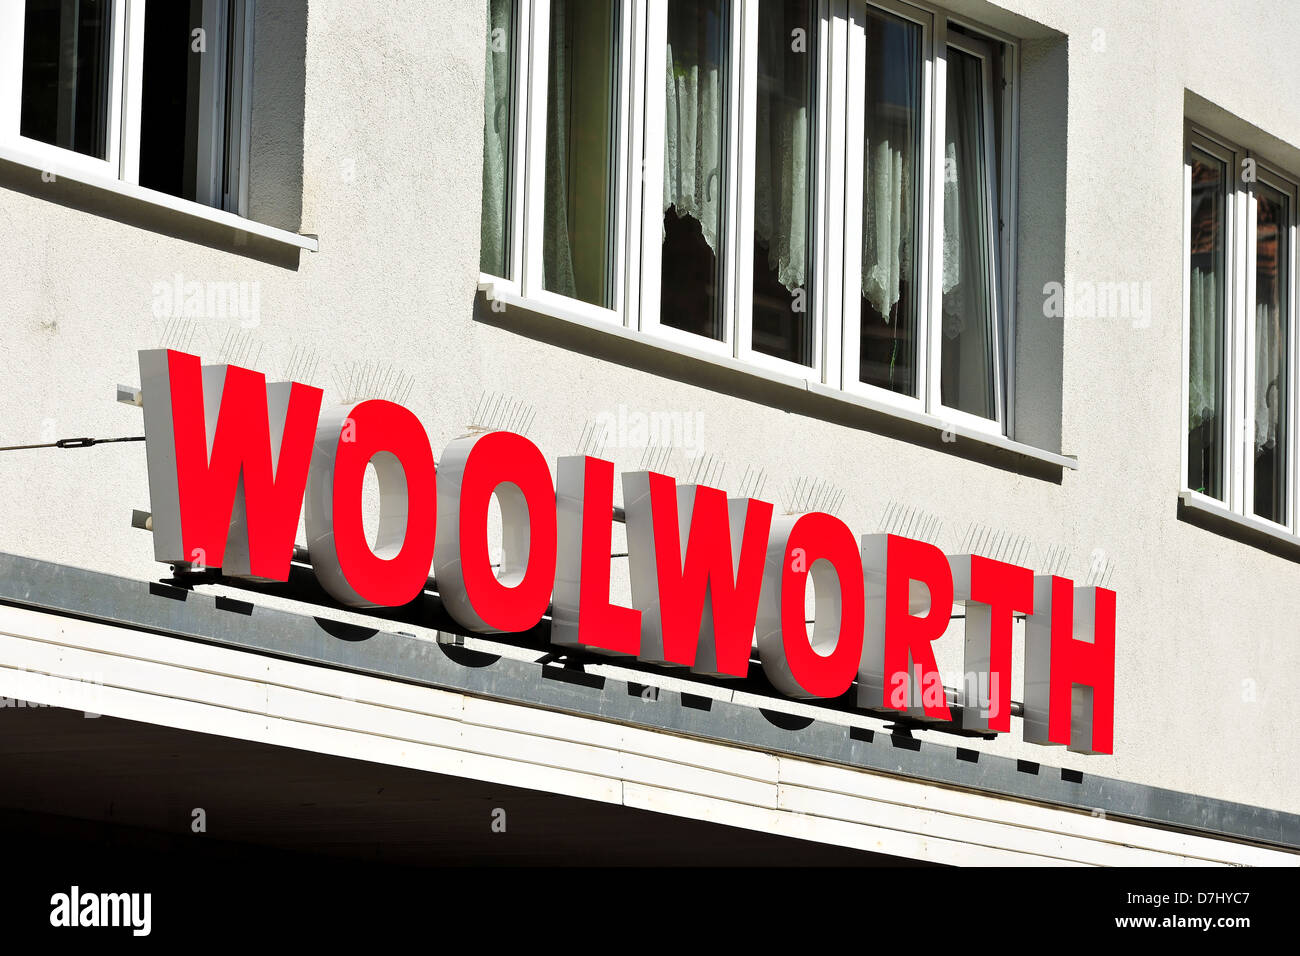 woolworth germany photos woolworth germany images alamy. Black Bedroom Furniture Sets. Home Design Ideas